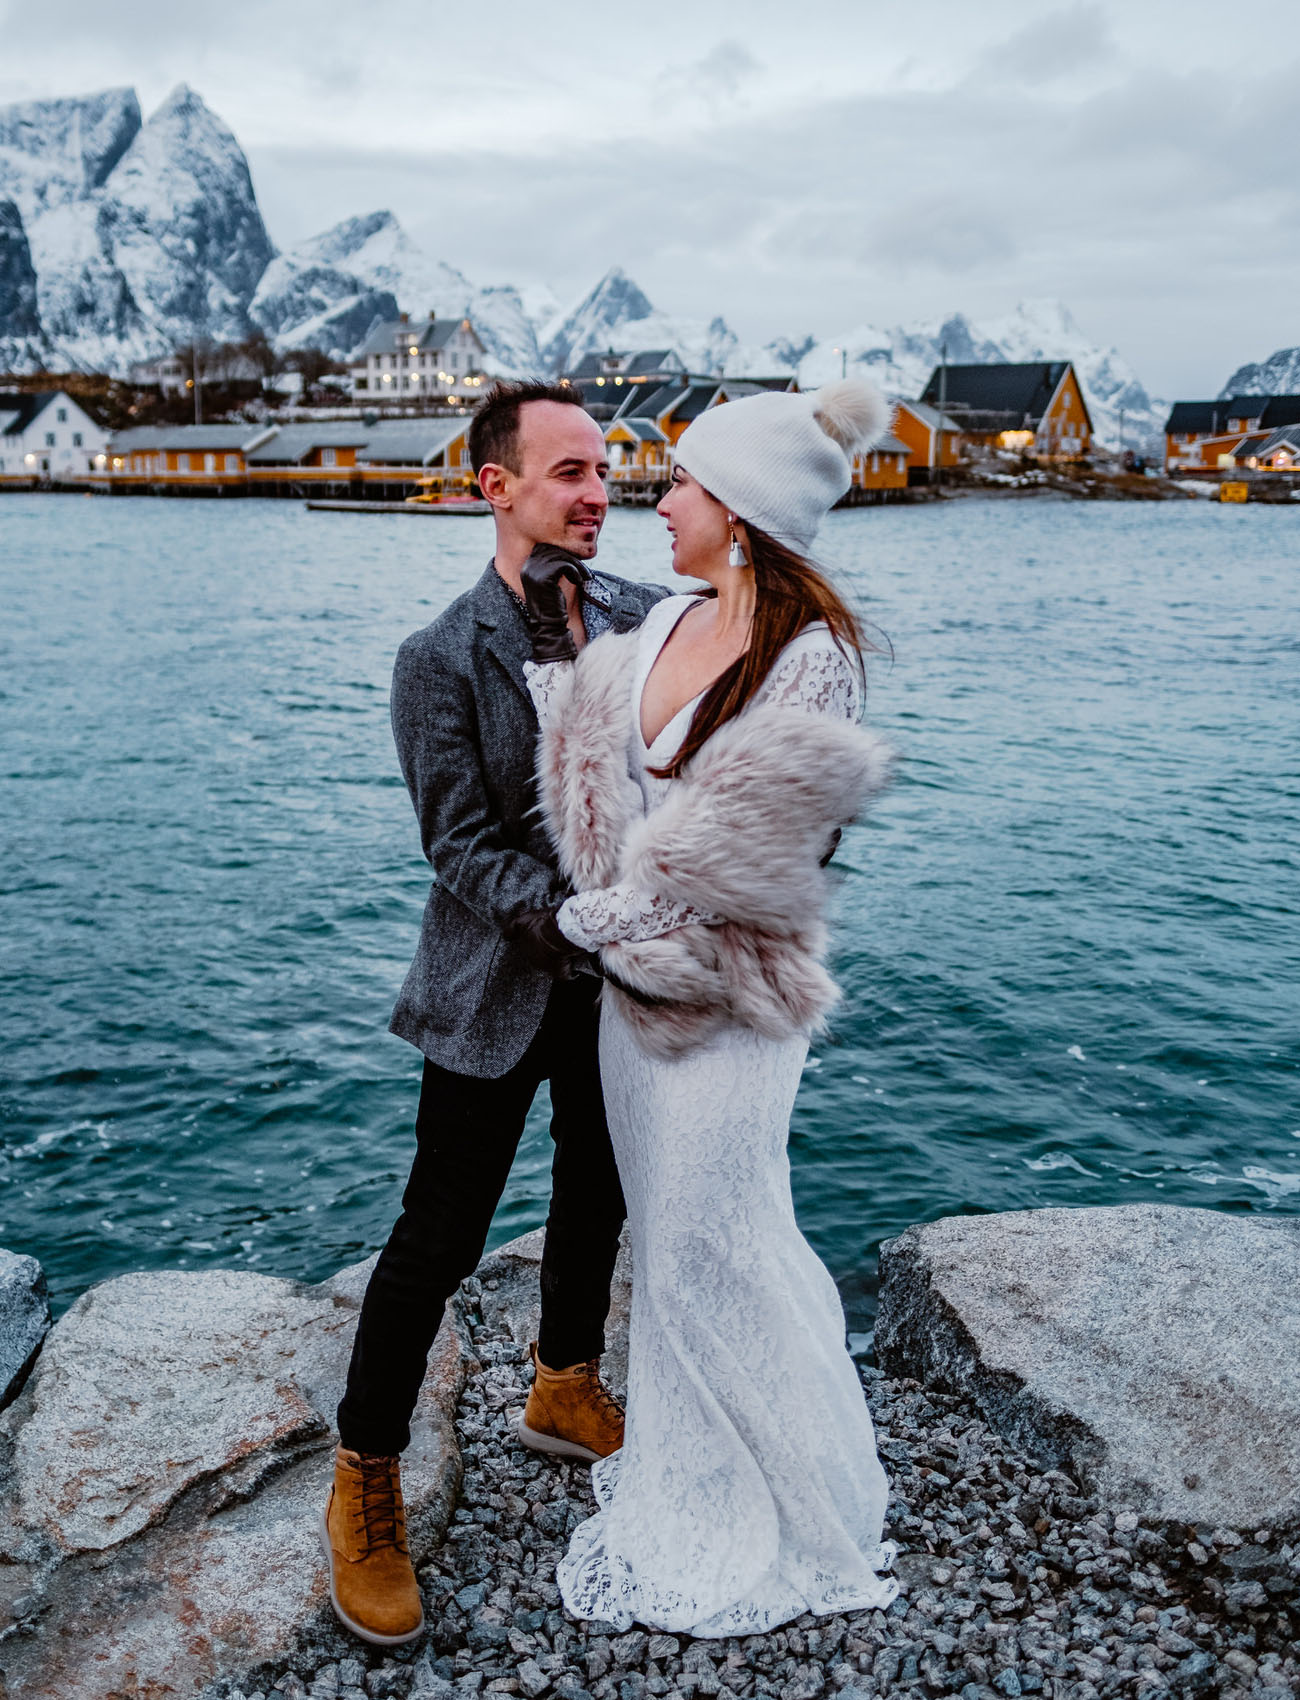 This couple skipped the idea of having a big wedding and decided on an elopement in Norway under the northern lights